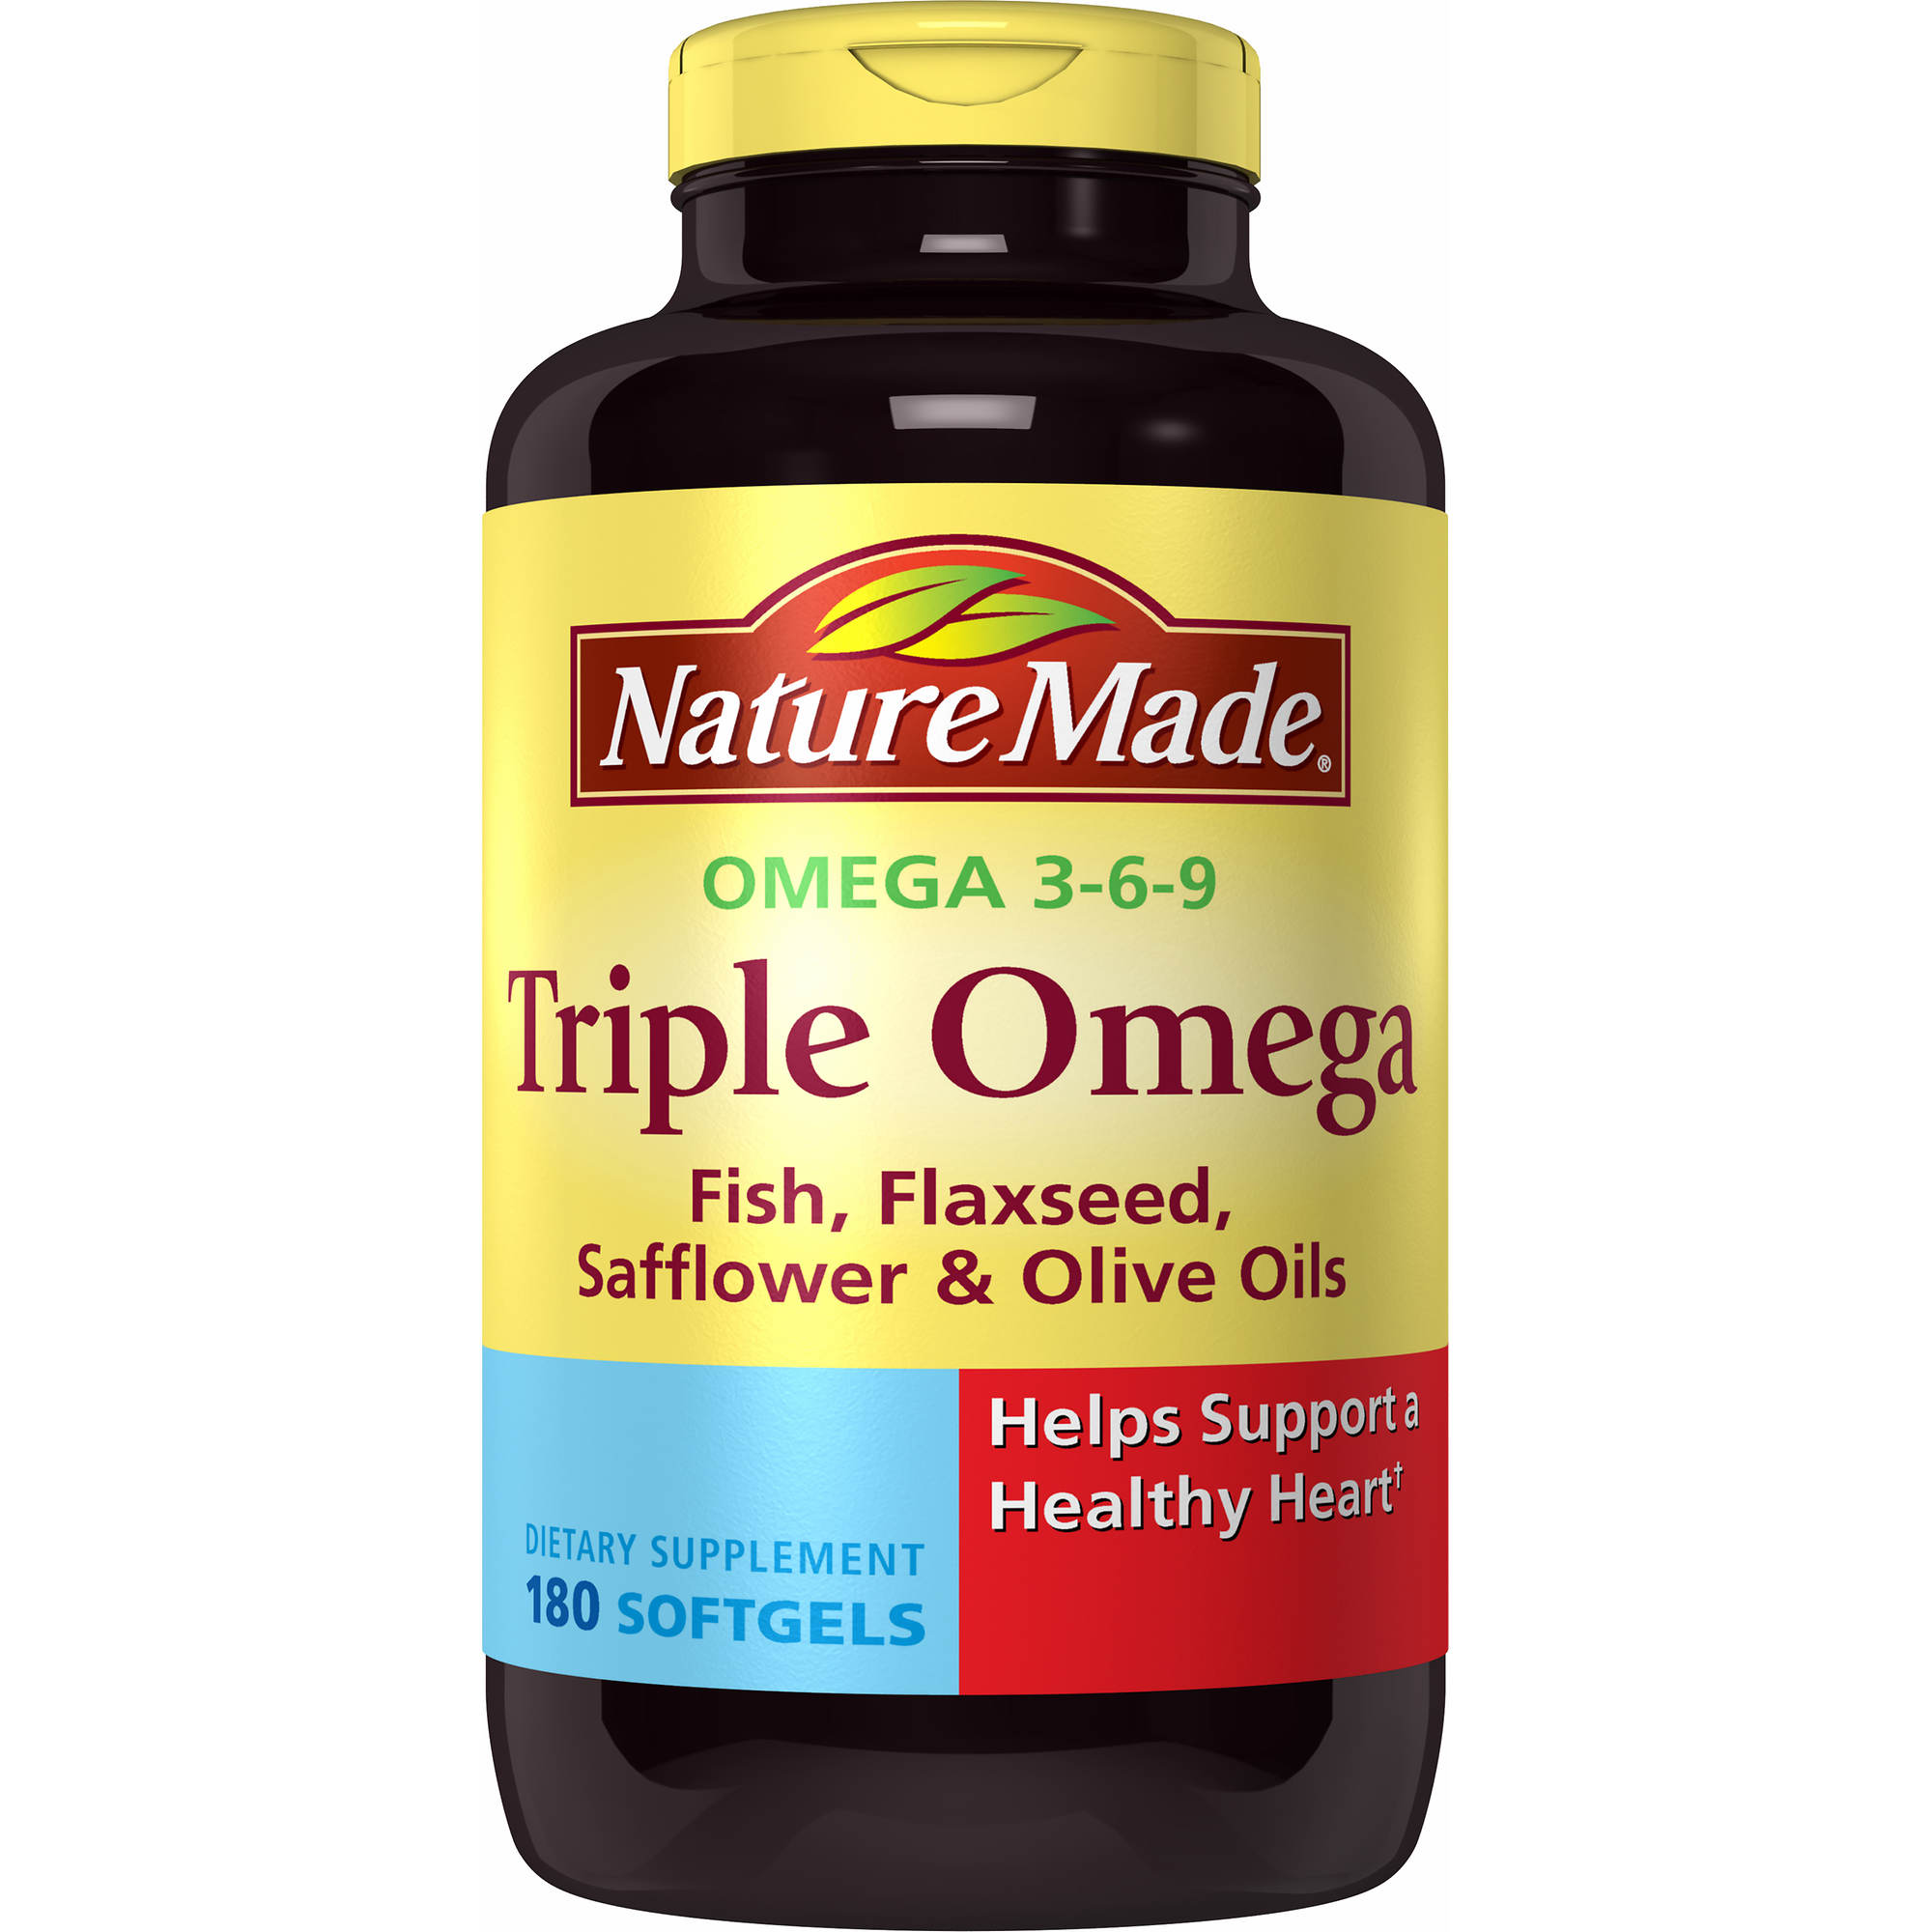 Nature Made Triple Omega 3-6-9 Softgels - 180 Count